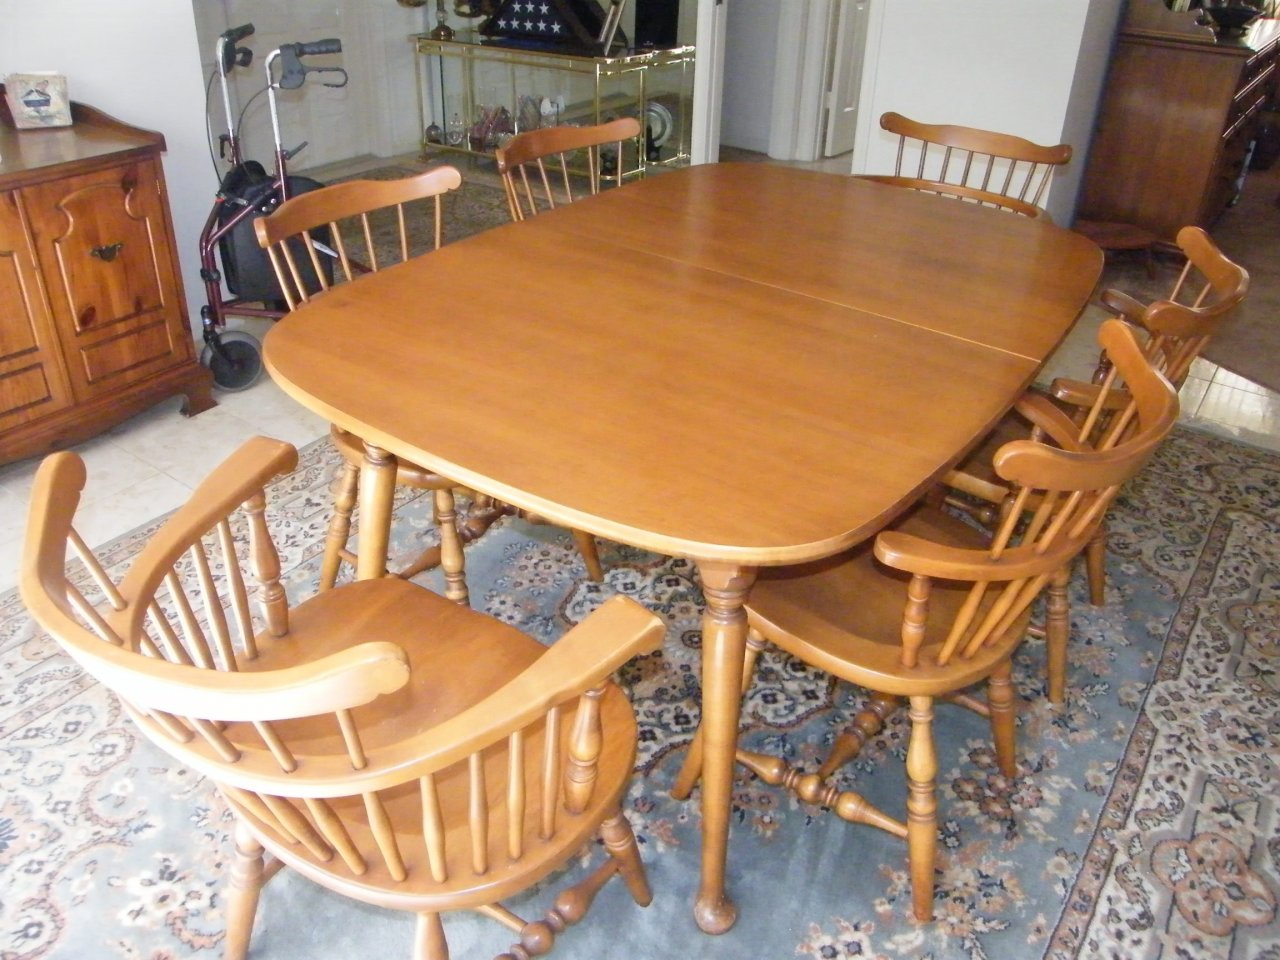 Need Resale Price On Beal Dining U0026 Hutch Set Beals Furniture 3 Months Ago